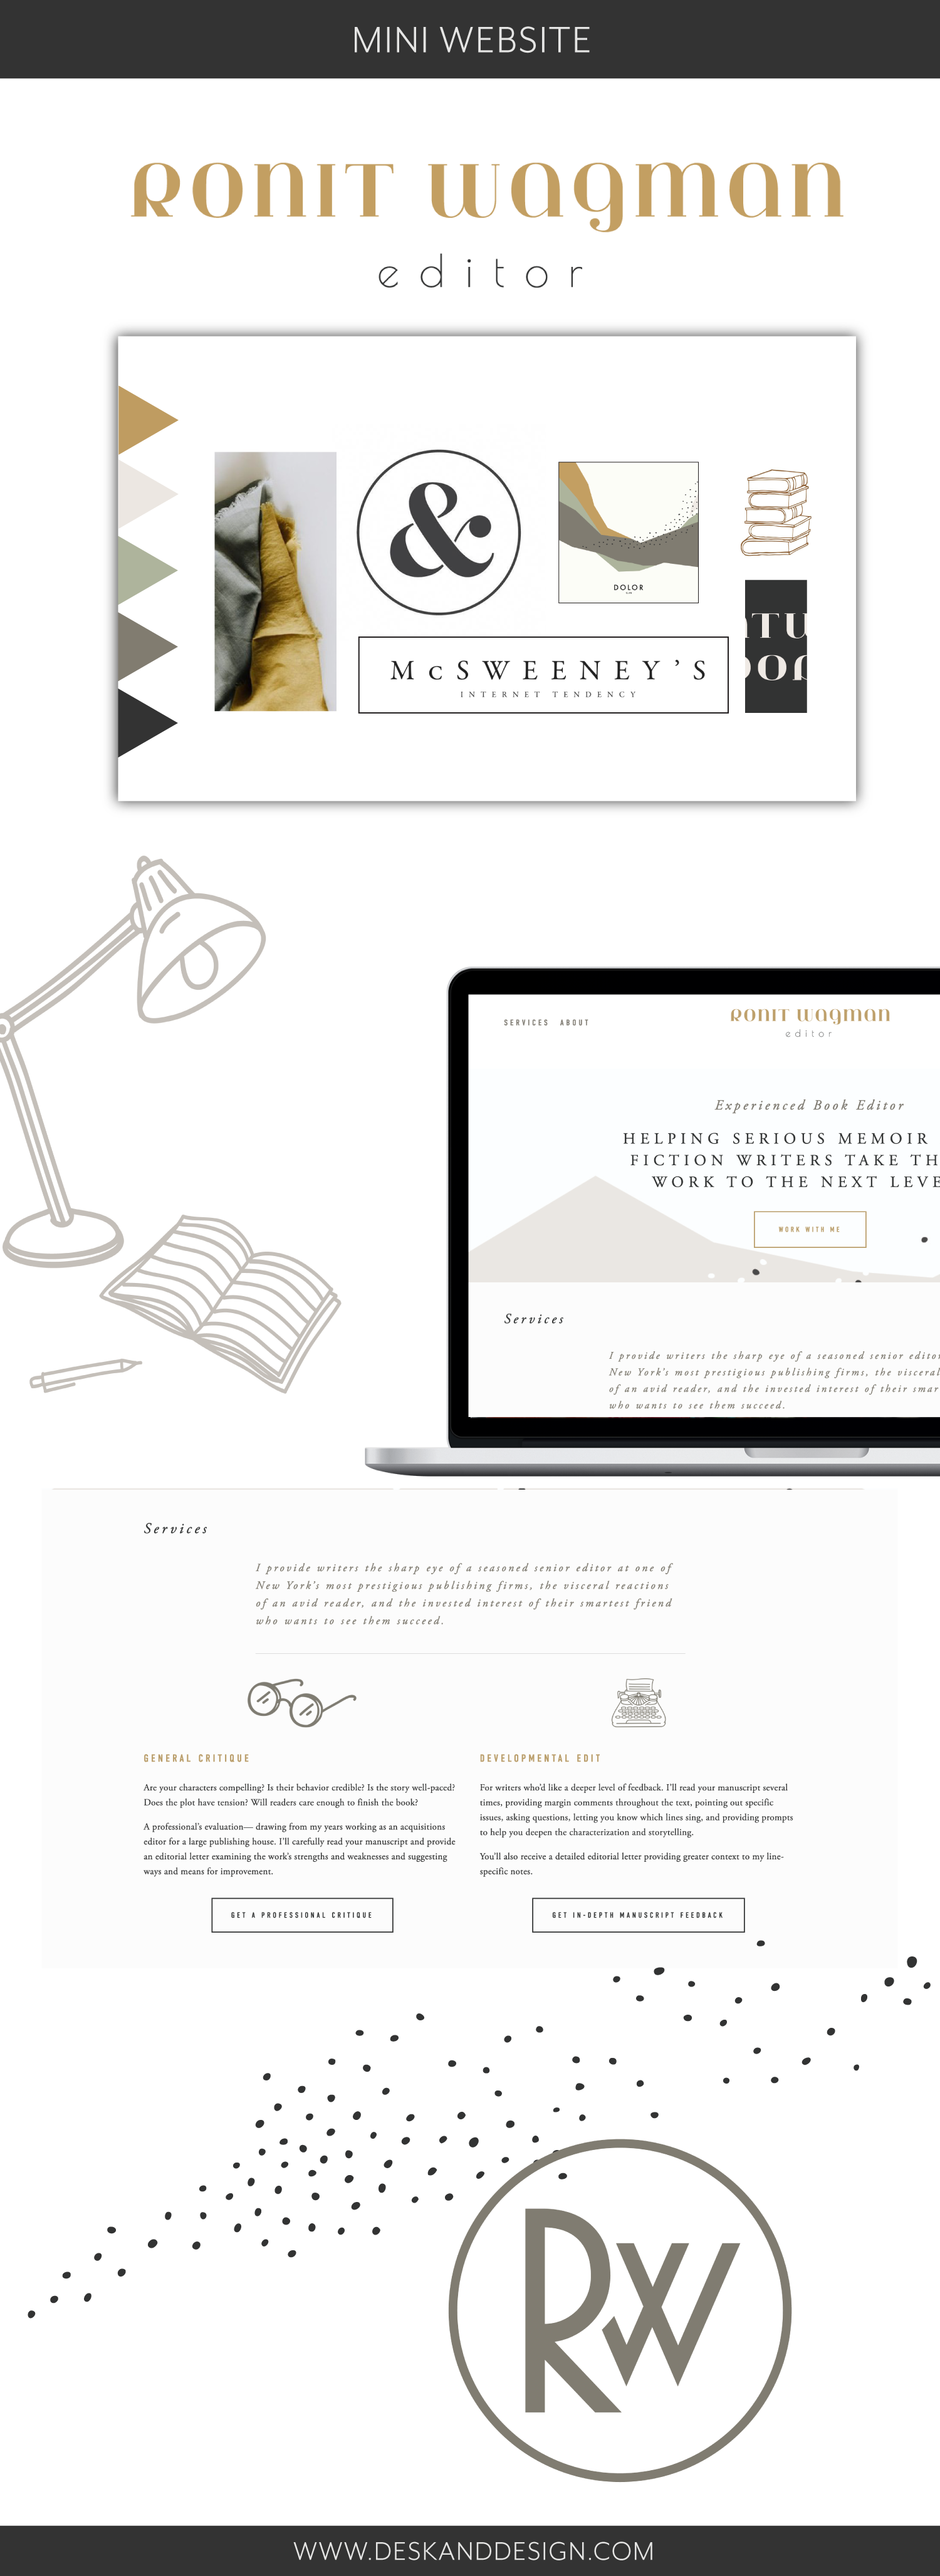 Squarespace web design, branding, and copy by Desk and Design